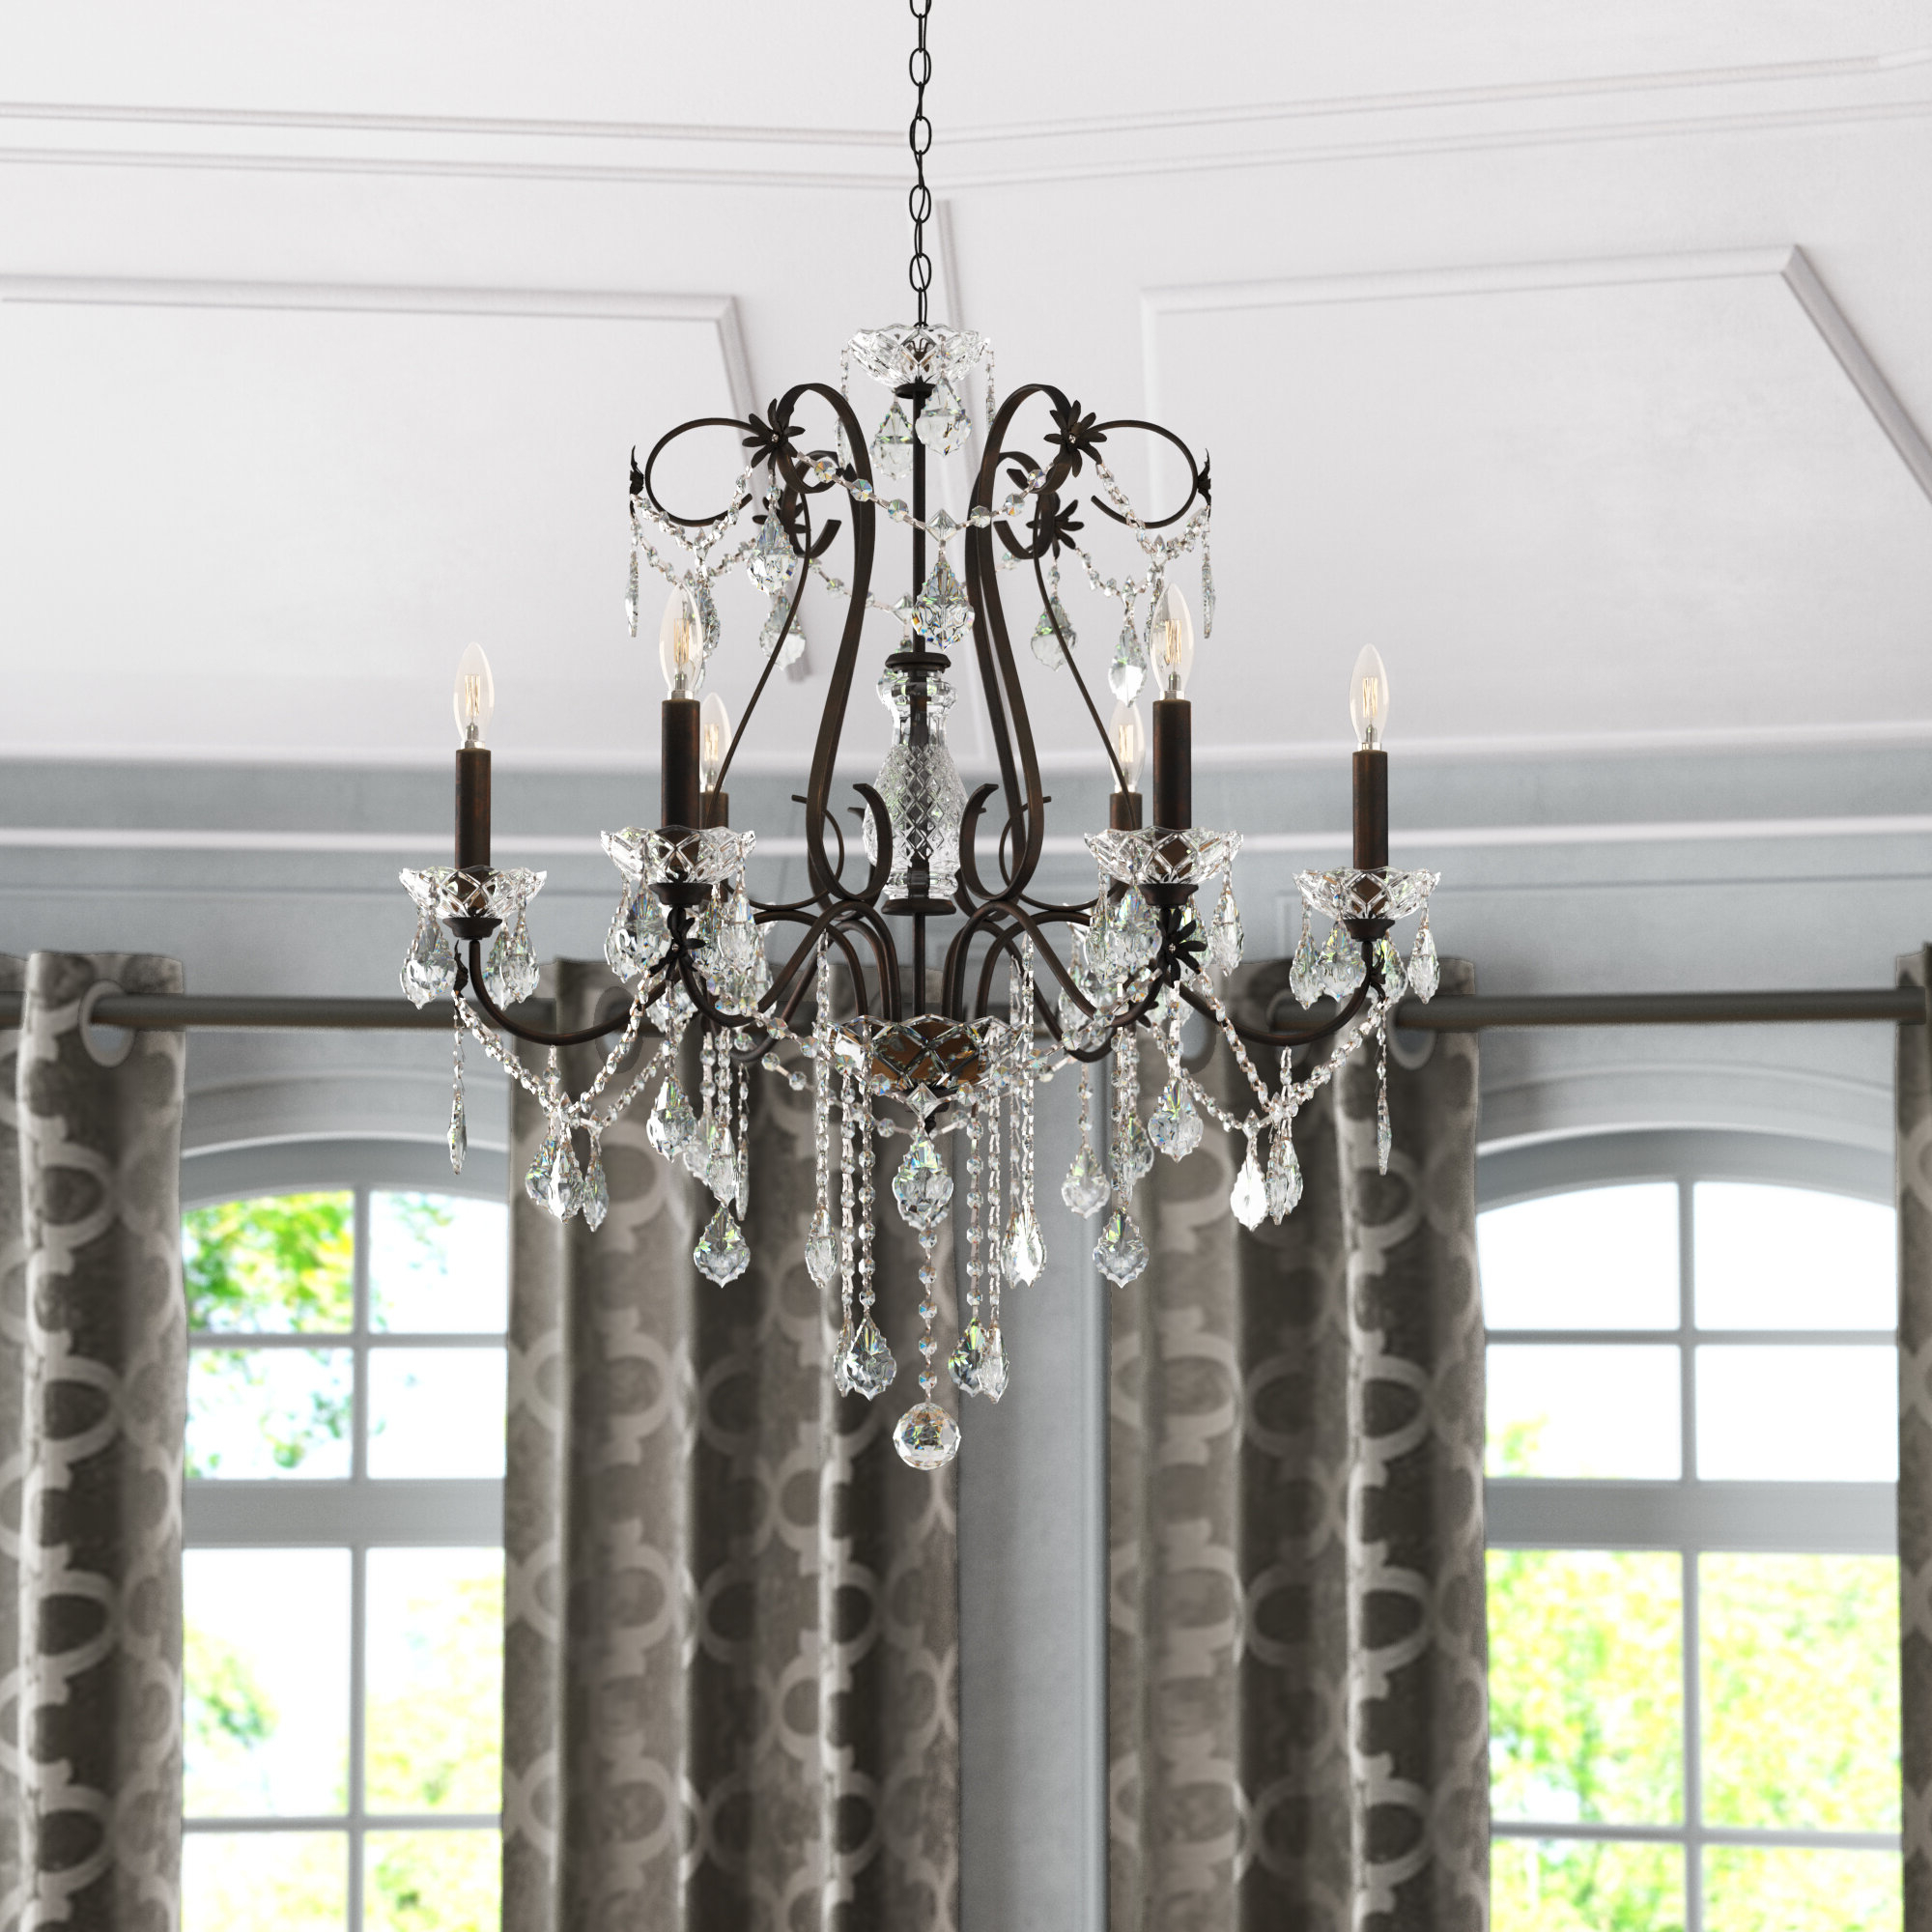 Hesse 5 Light Candle Style Chandeliers In Favorite Thao 6 Light Candle Style Chandelier (View 10 of 20)